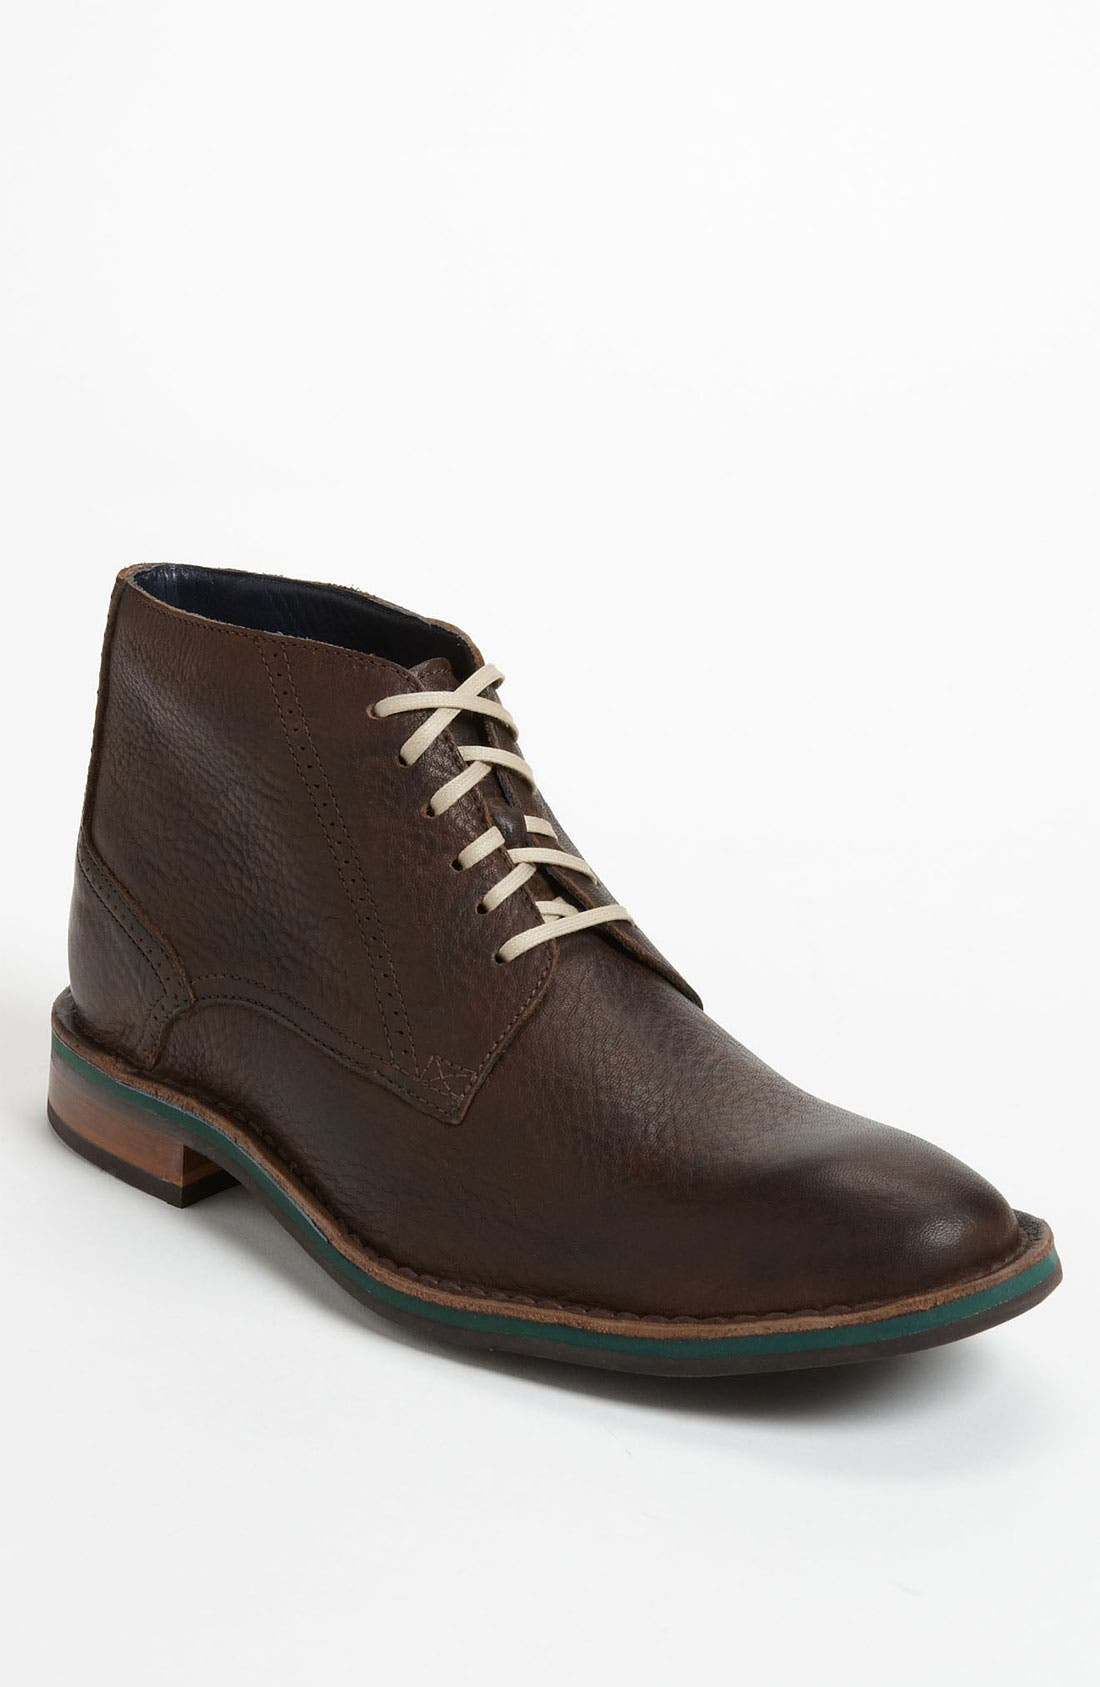 Alternate Image 1 Selected - Cole Haan 'Air Stratton' Chukka Boot